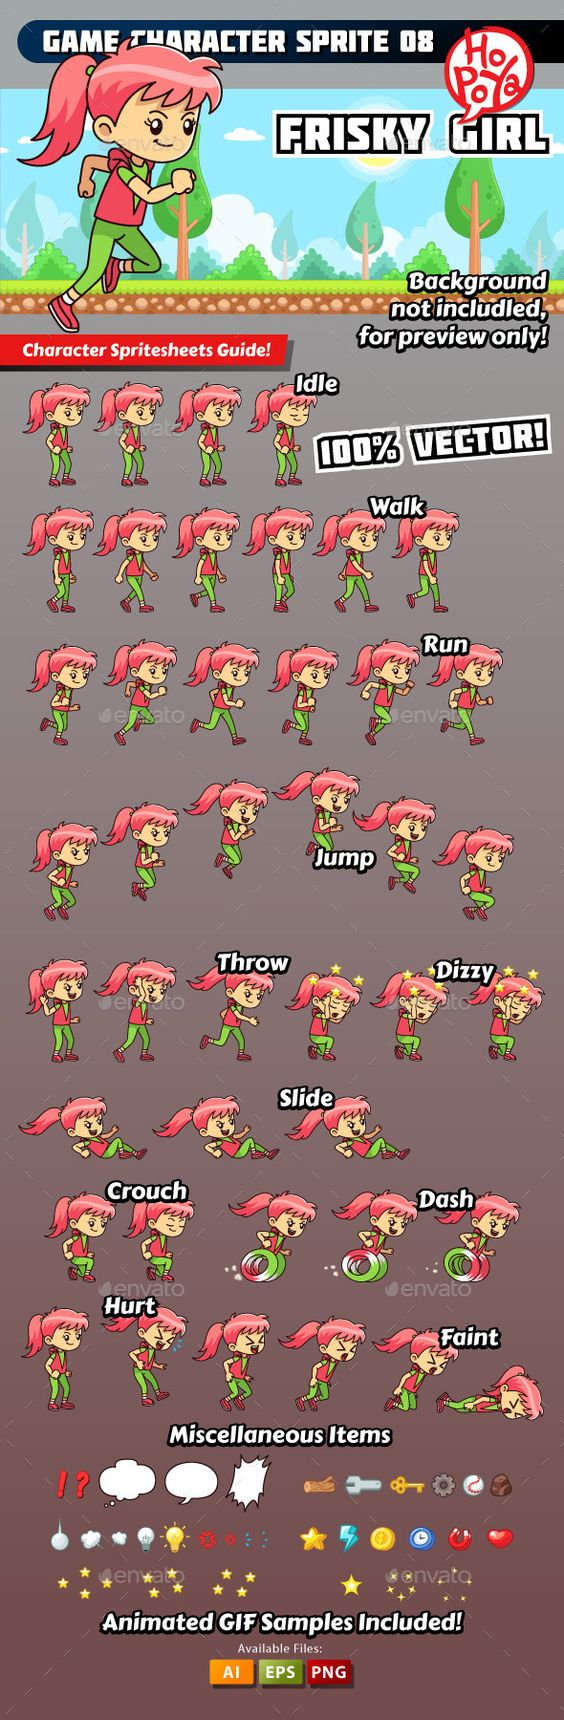 Game Character Sprite 08 Pinterest Sprites, Game